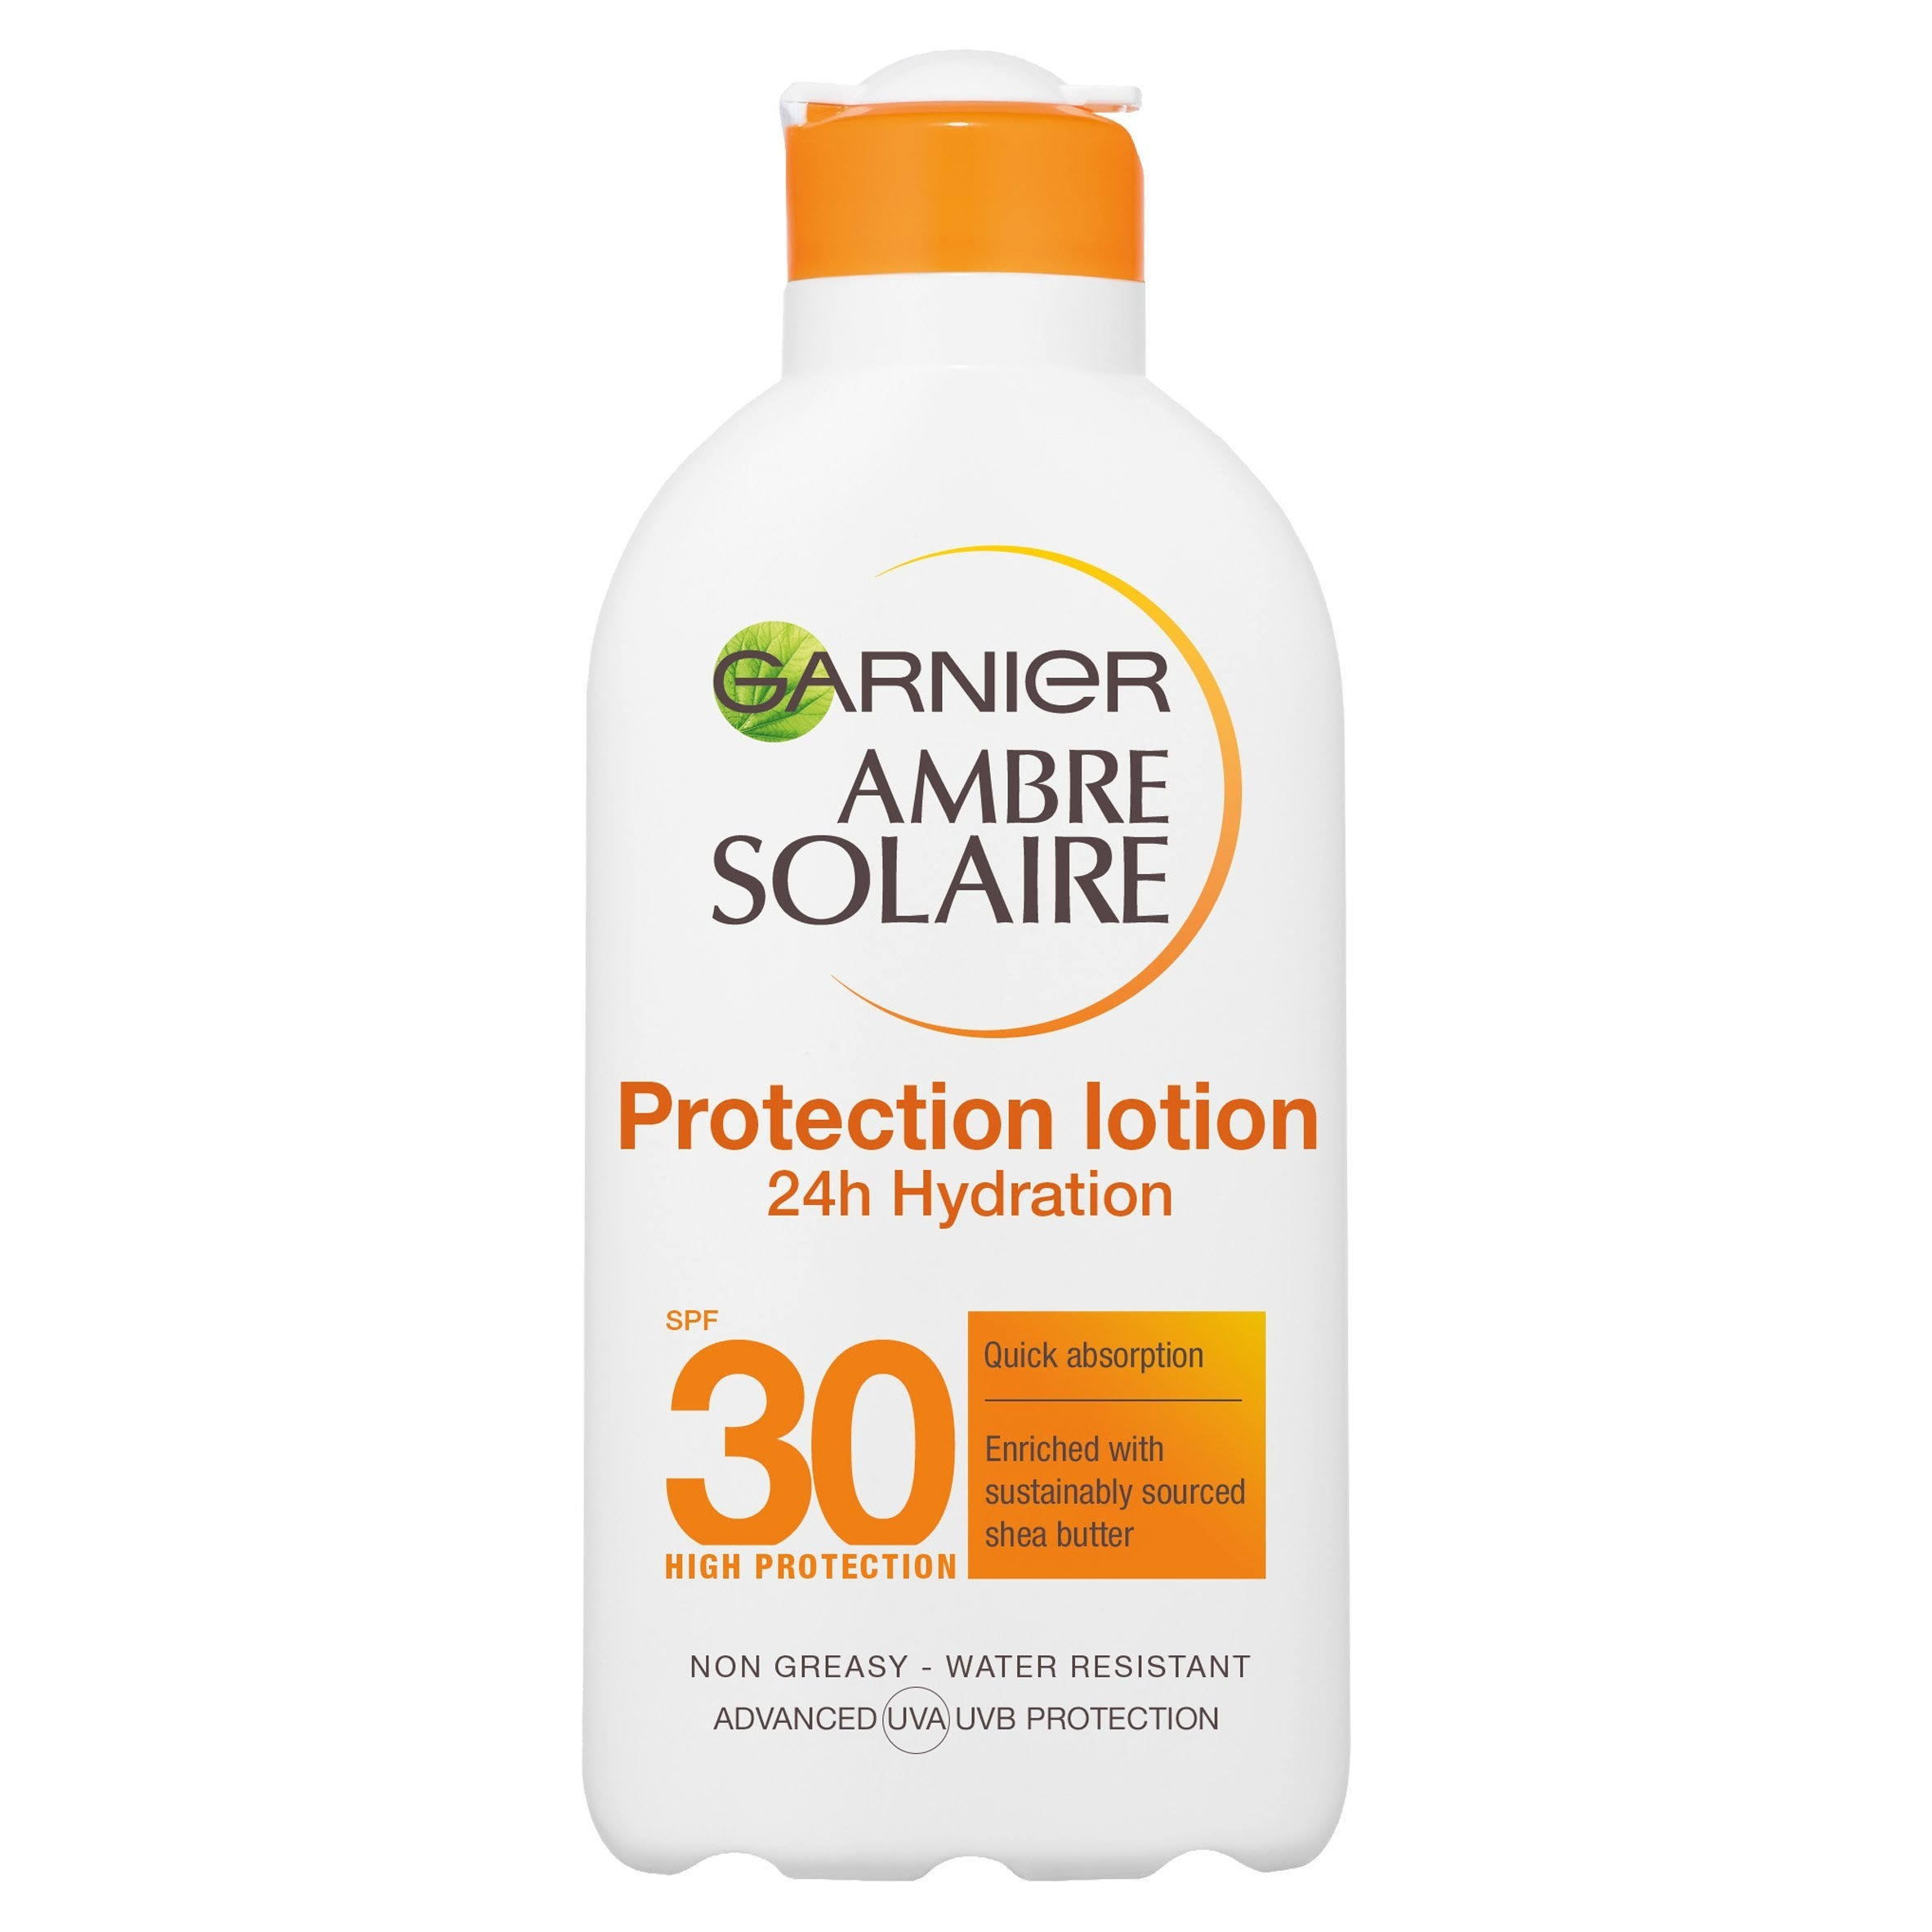 Ambre Solaire Ultra-Hydrating Shea Butter SPF30 Sun Protection Cream - 200ml